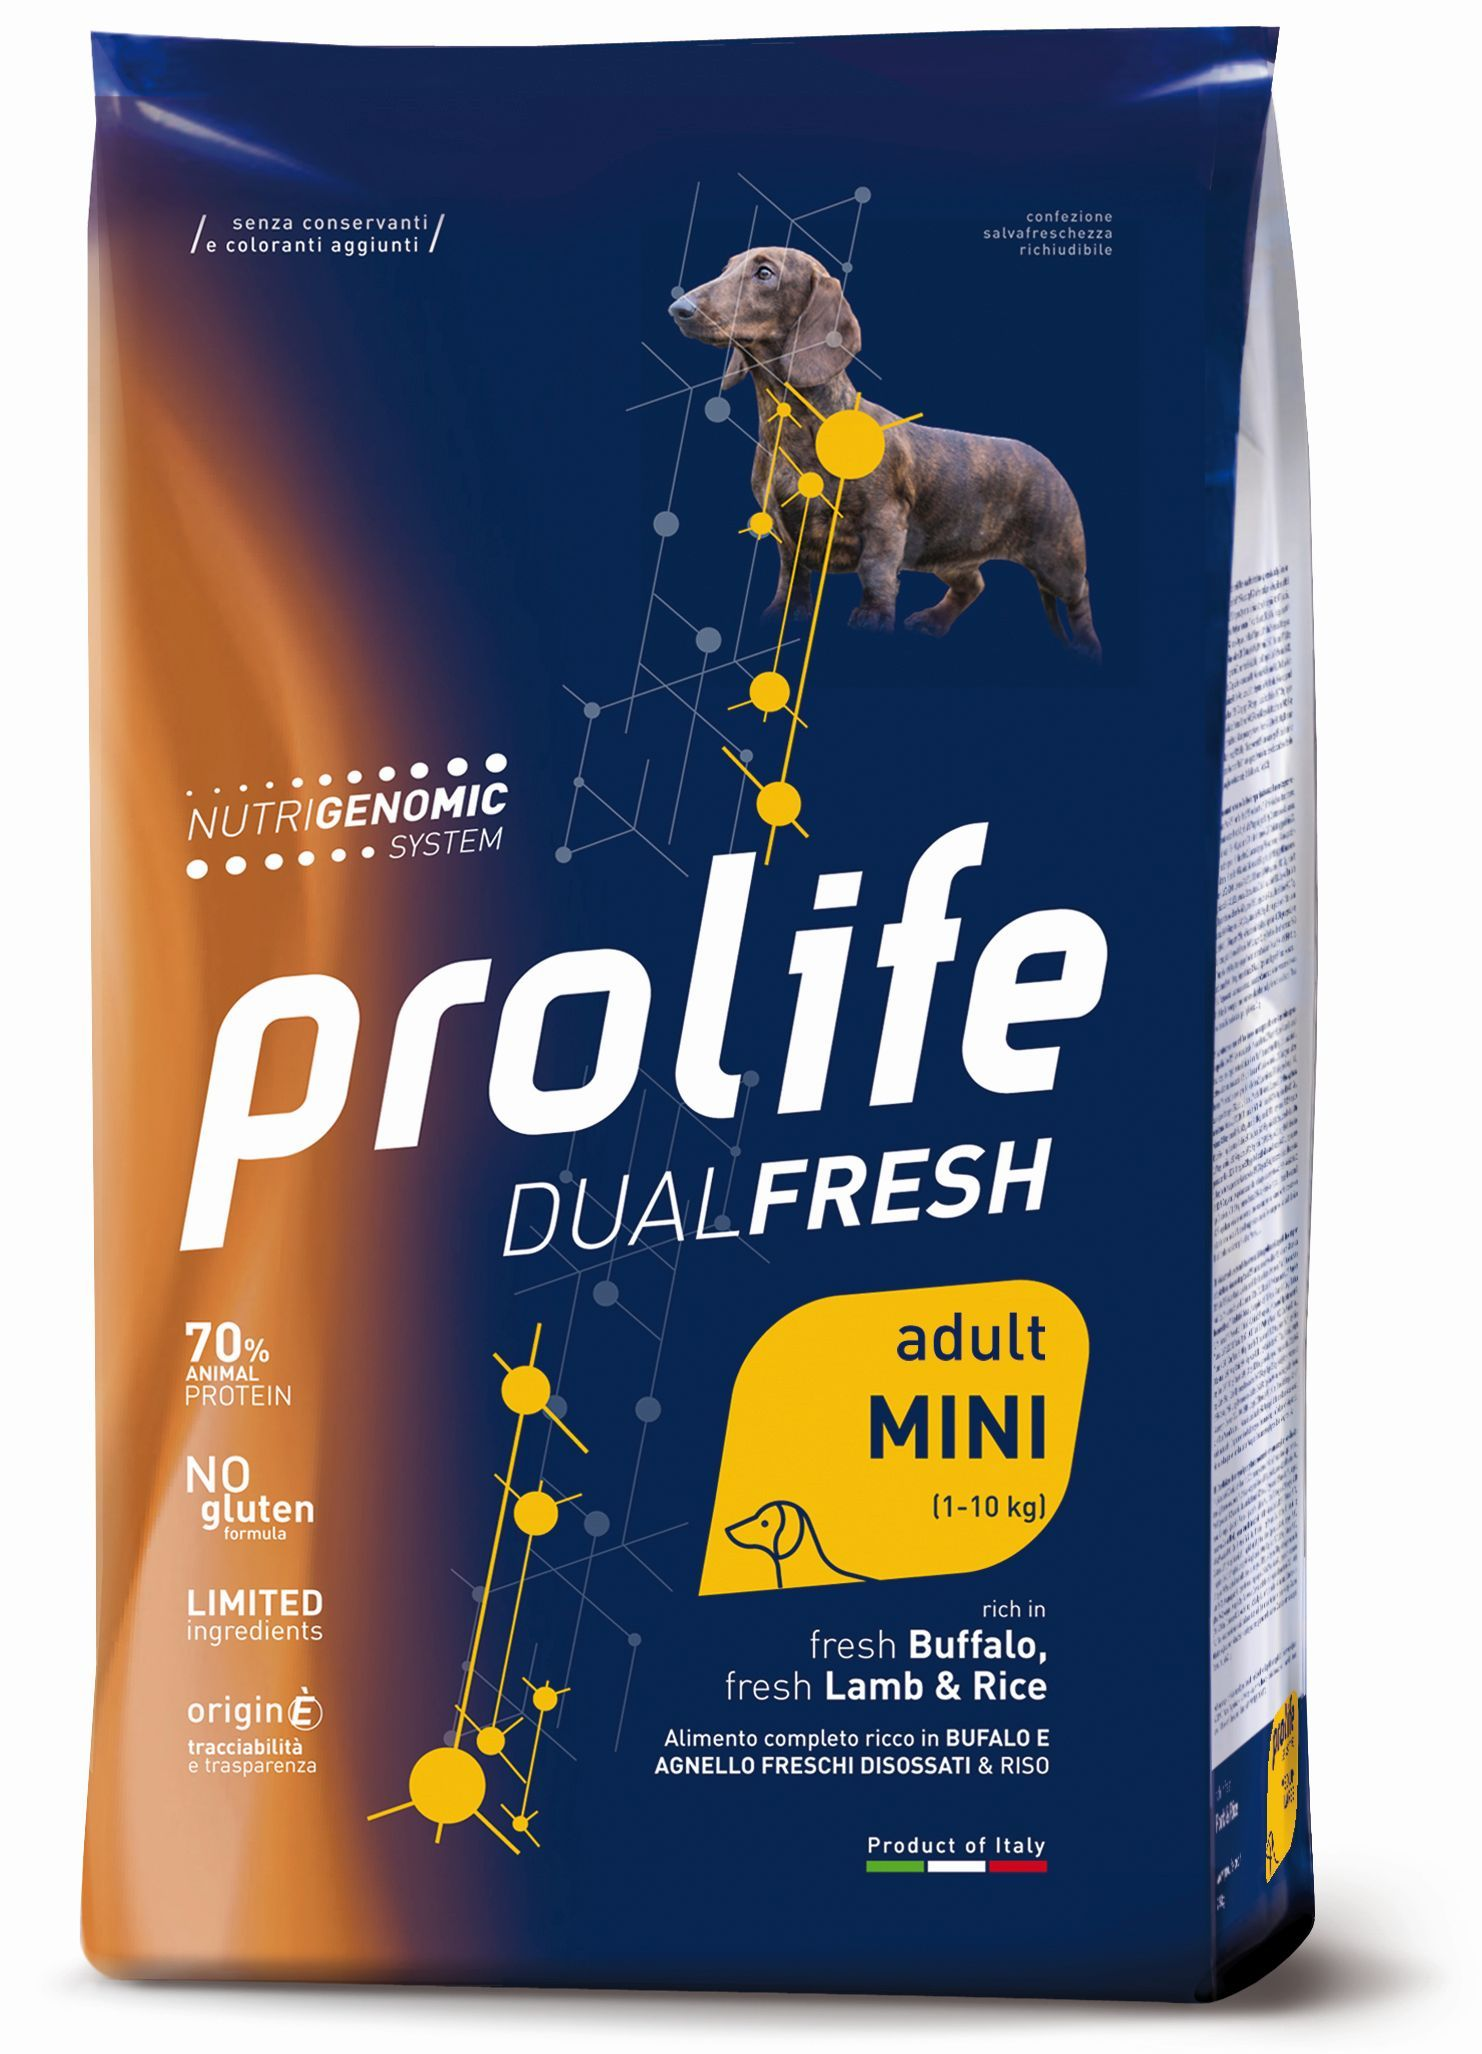 Complete pet food, rich in fresh deboned salmon, fresh deboned codfish and rice.